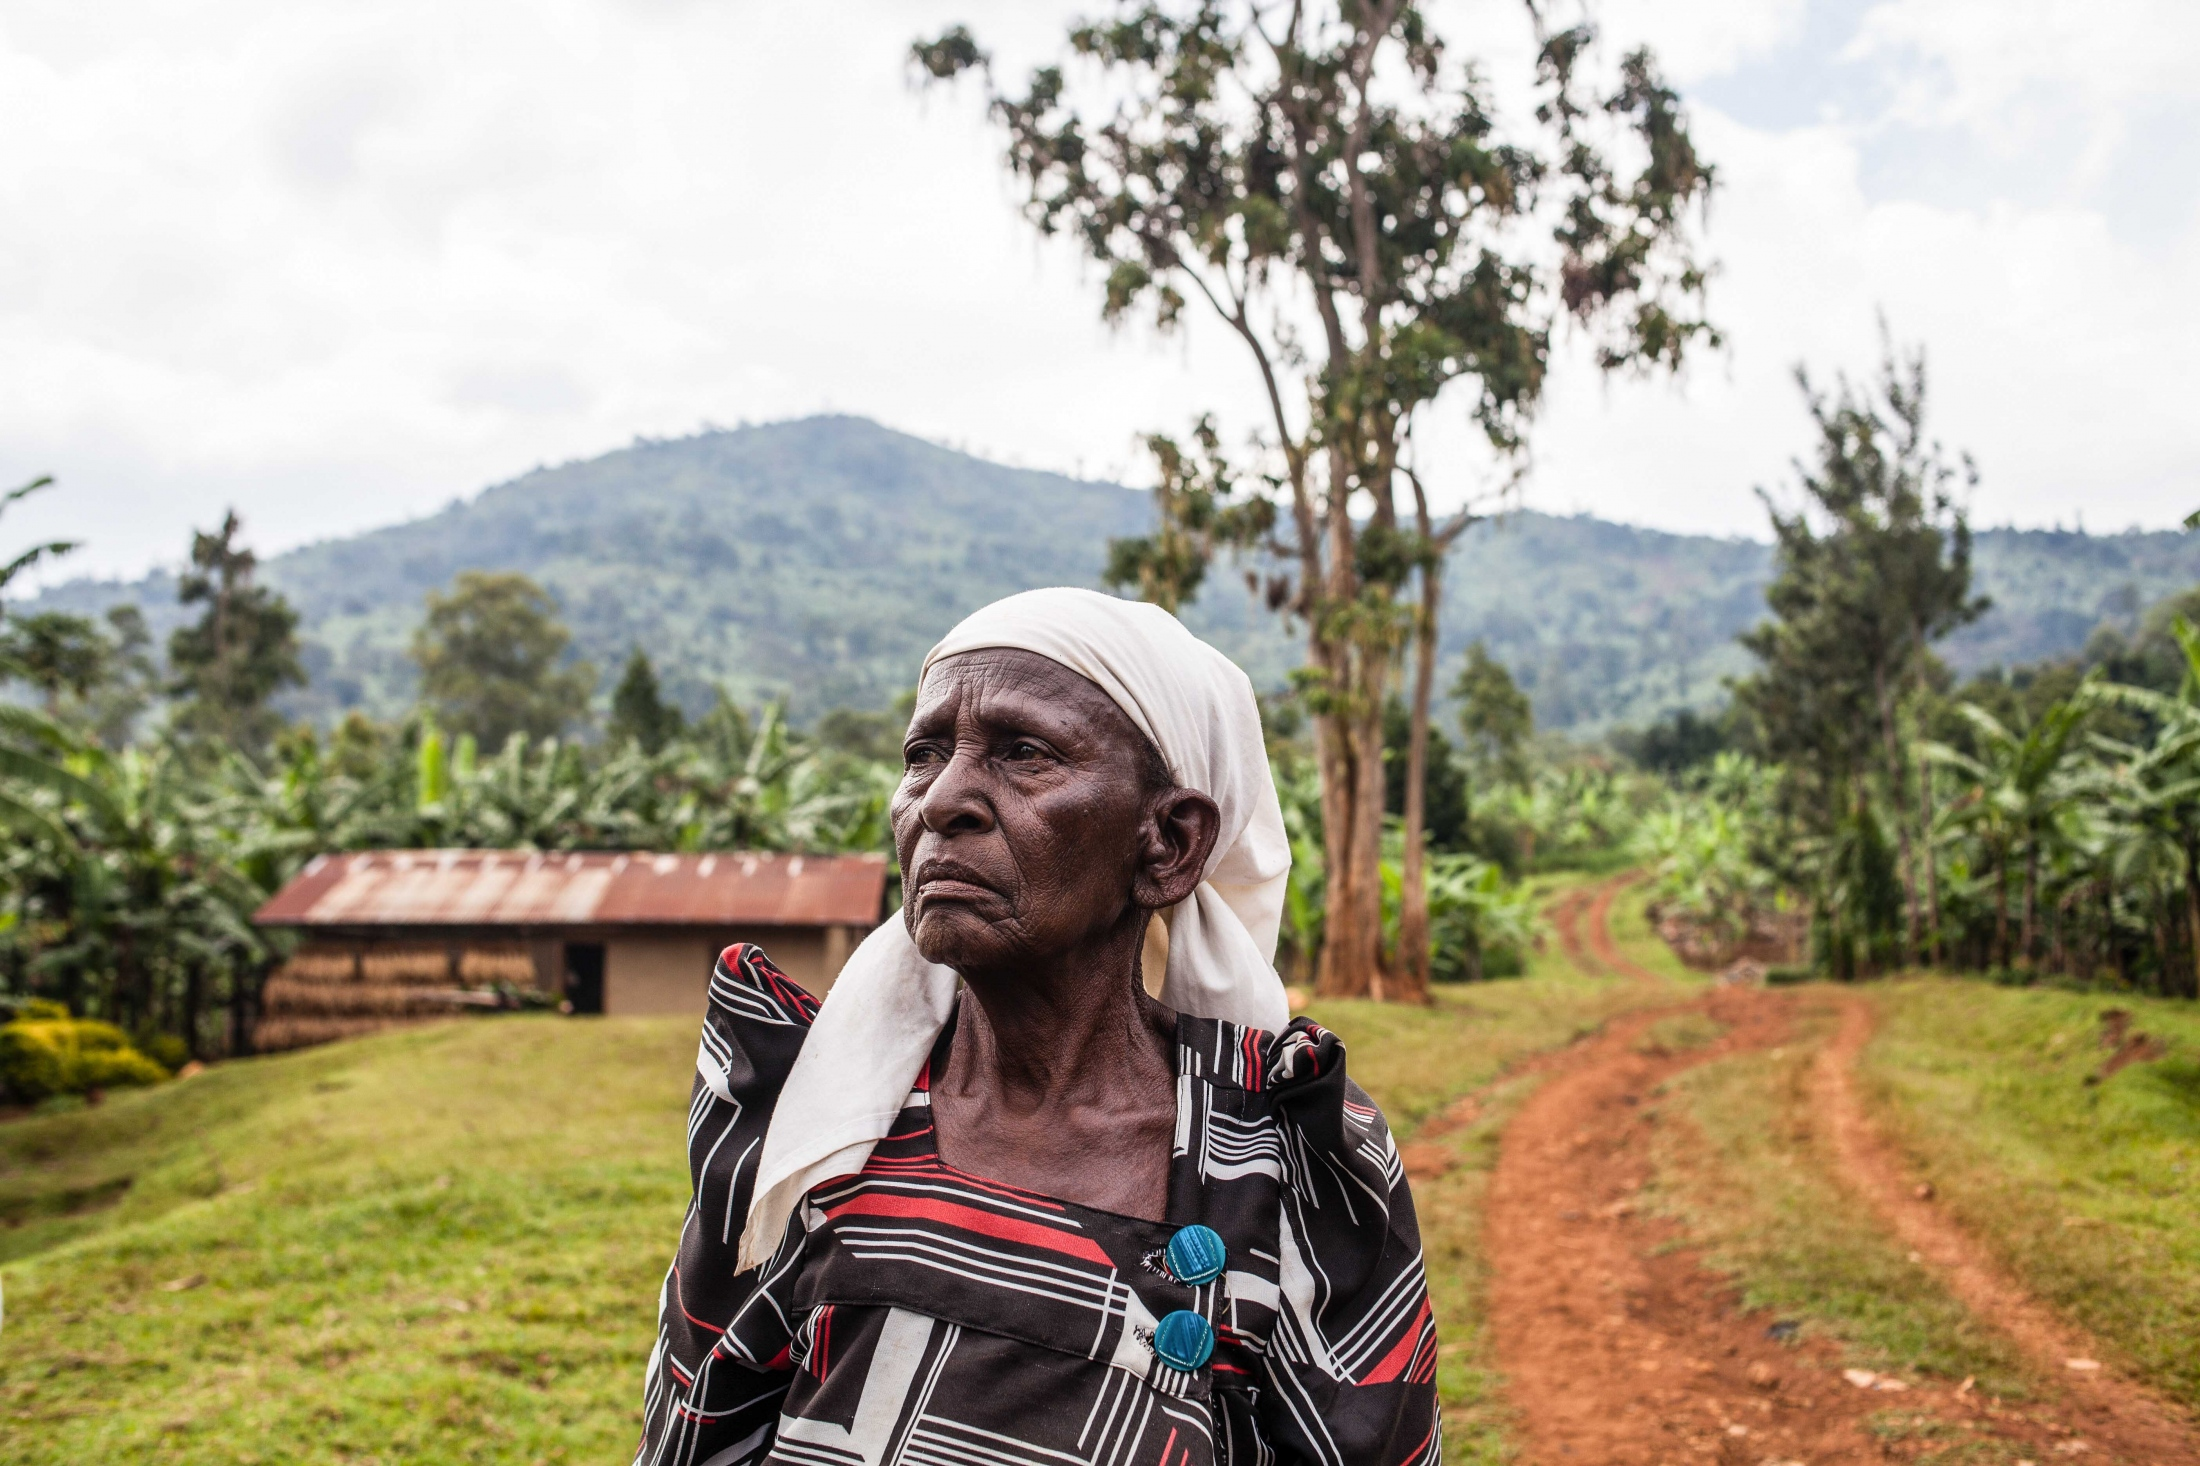 A portrait of 81-year-old Masa at her home in Bududa, Uganda. She began supporting mothers to give birth in the villages of Bududa District 40 years ago when her daughter in-law was forced to give birth in the middle of the night in the Elgon mountains in Eastern Uganda. In 2010, the government banned the practice of Traditional Birth Attendants (TBAs), but did little to improve modern maternal health services in rural areas of Uganda. Masa now refers her patients to the health facility in Bushiika town, Bududa District, Uganda.